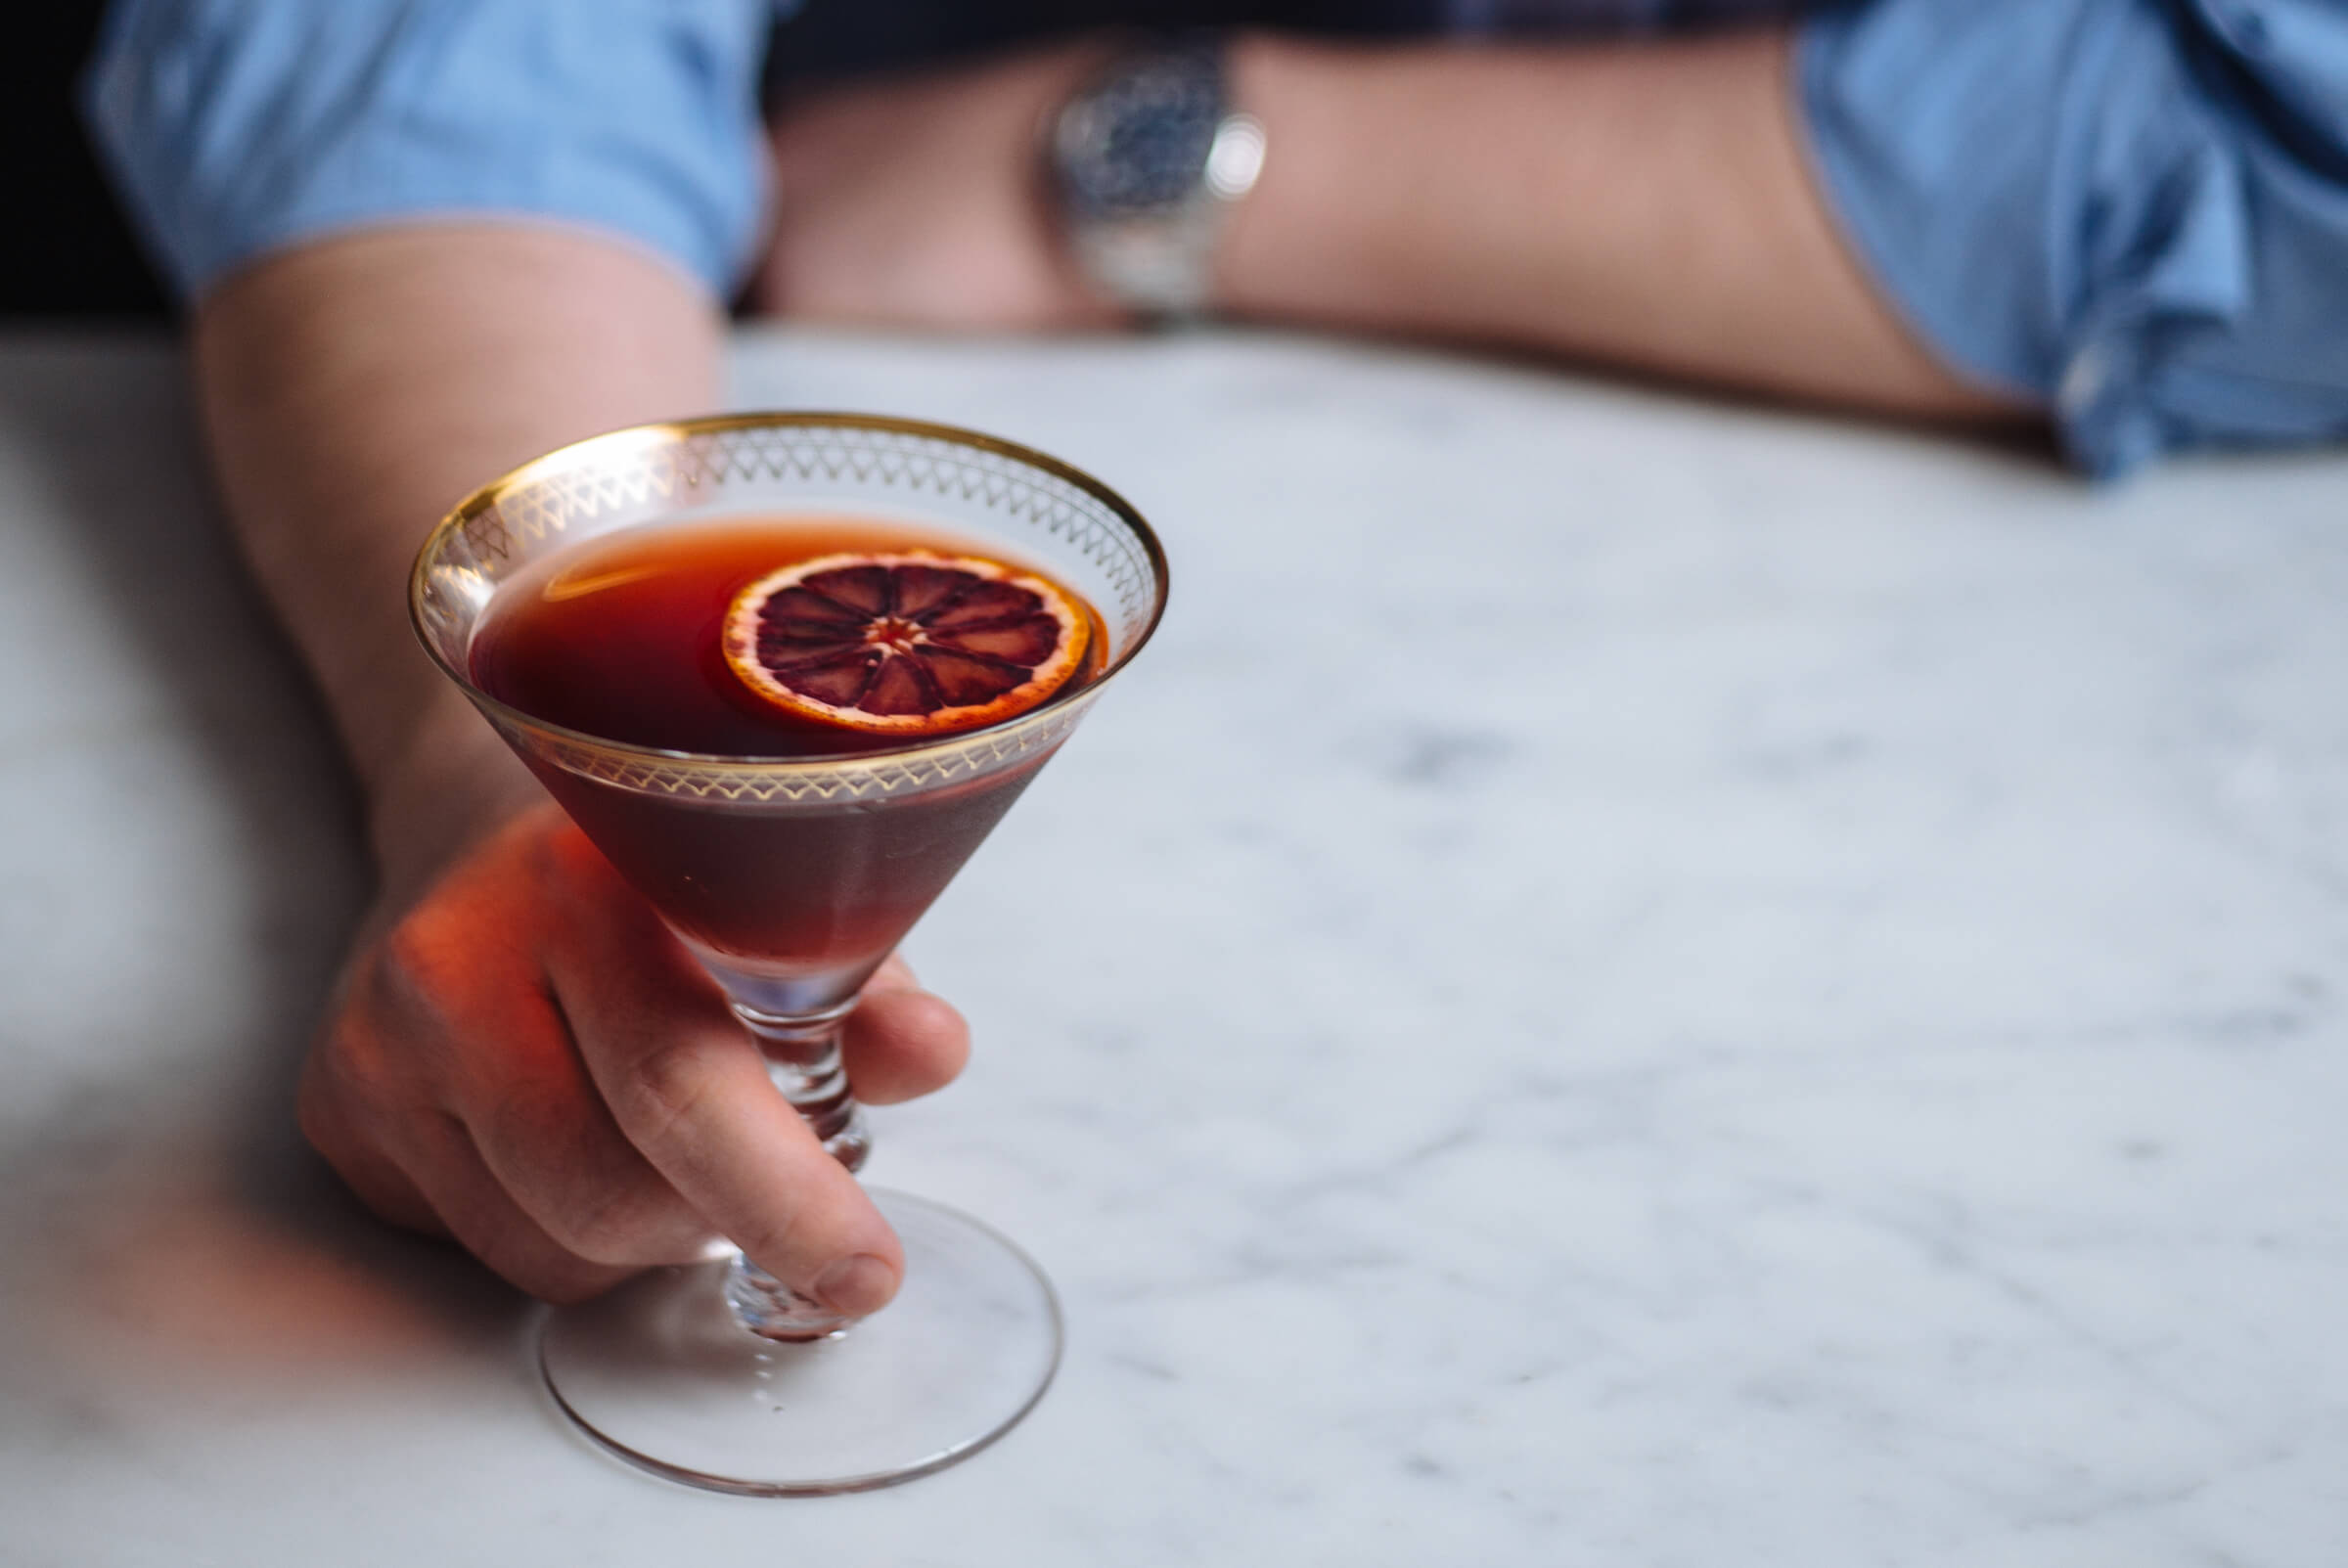 The boulevardier cocktail is made with 1 ounce bourbon or rye whisky 1 ounce Campari 1 ounce sweet vermouth by The Taste SF